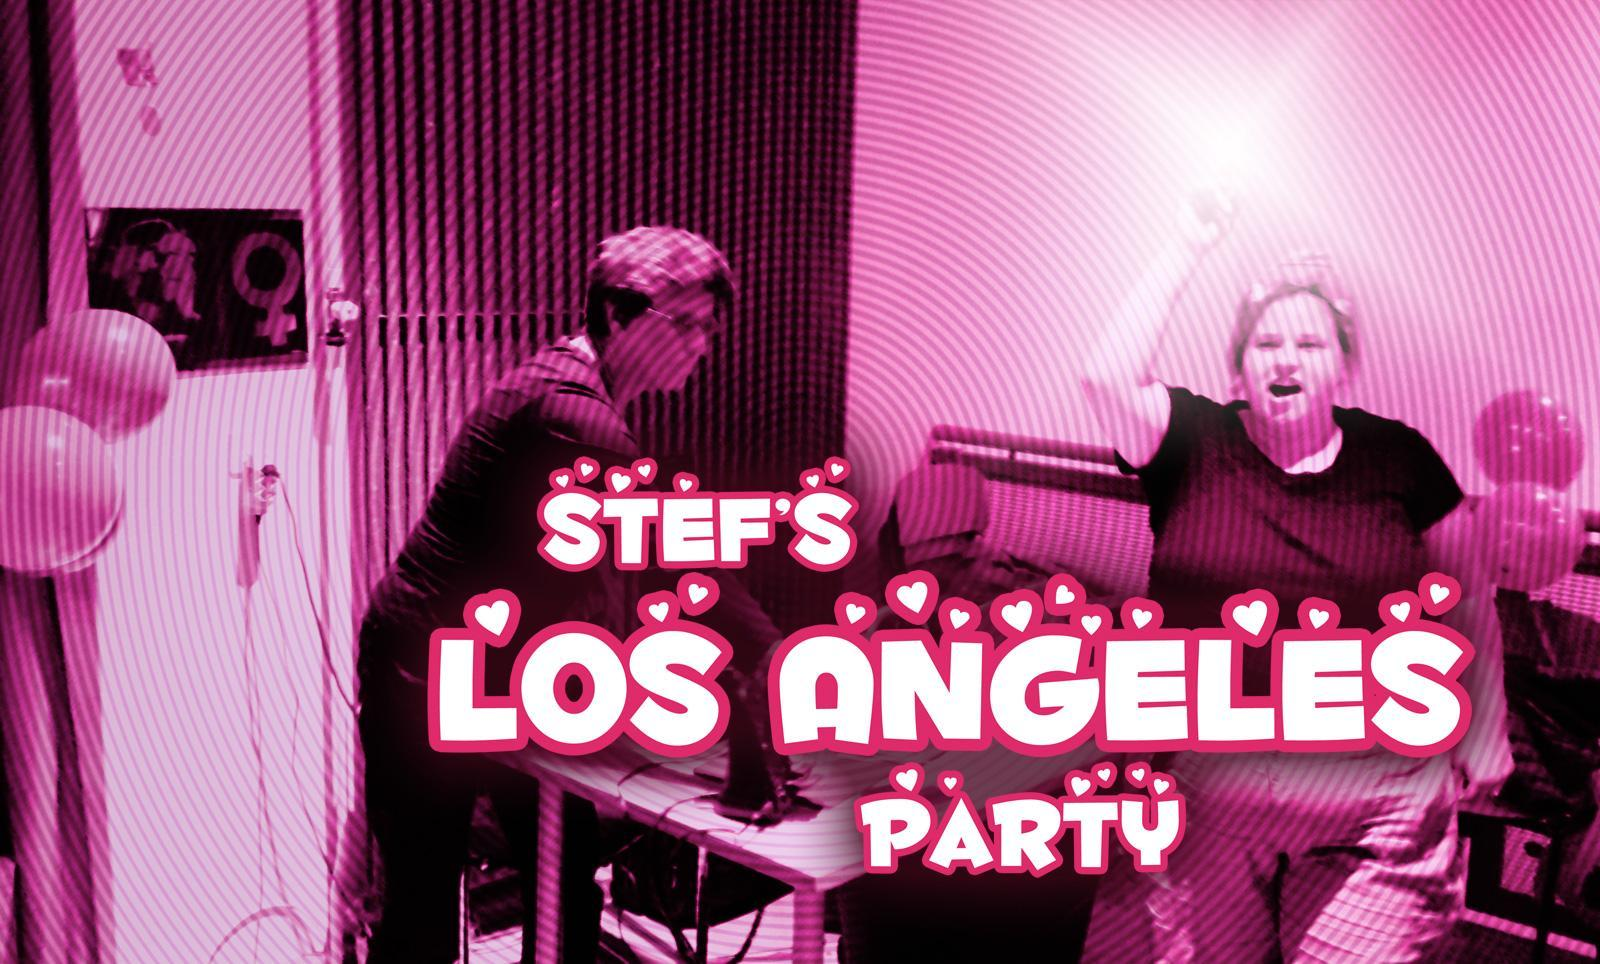 Stef's Los Angeles Party